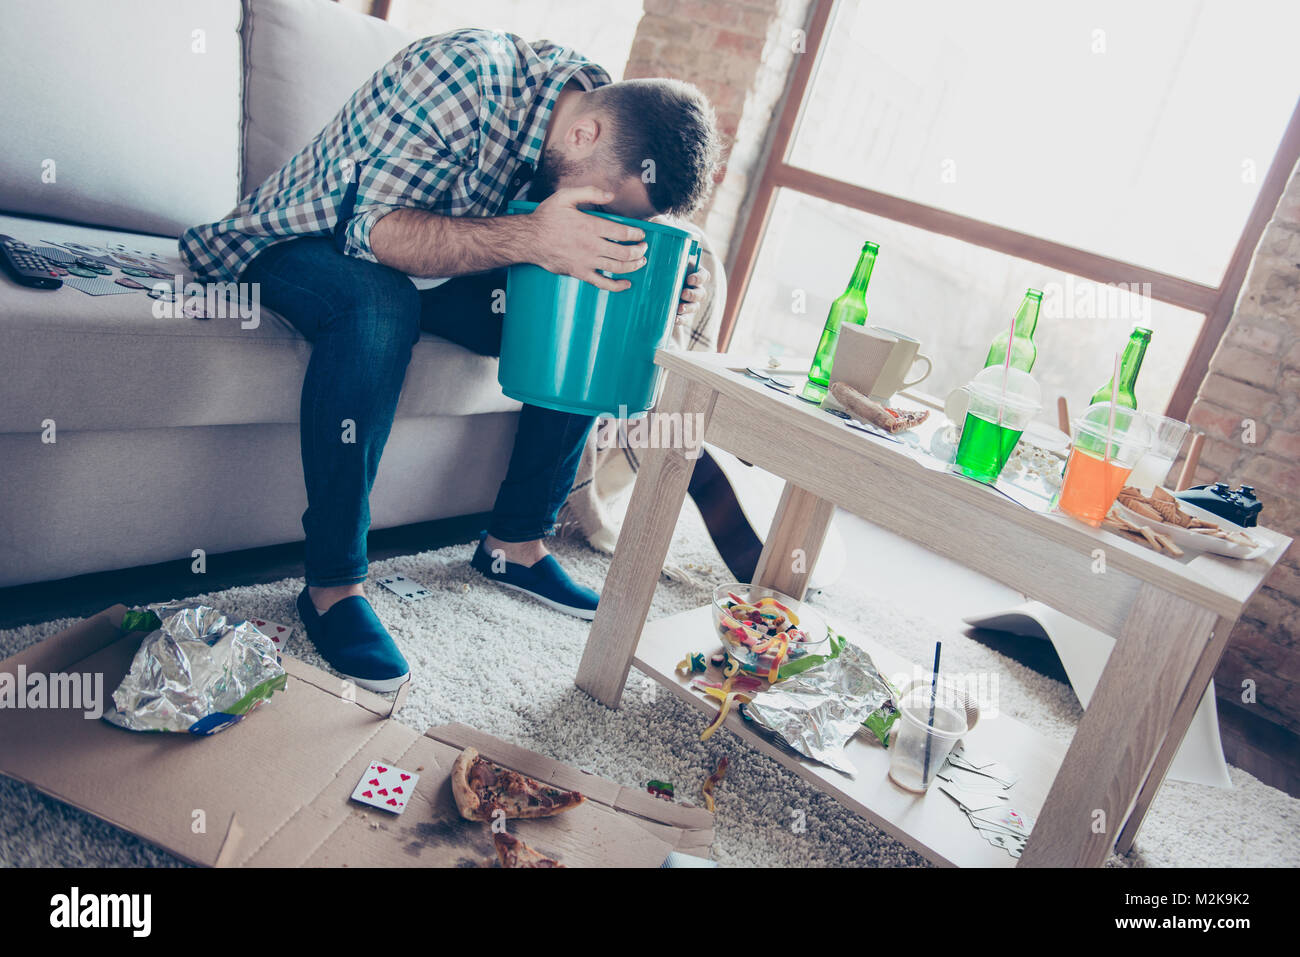 I hate morning after party! Sick tired feeling bad bearded guy with stylish hairdo guy is holding a blue bucket - Stock Image